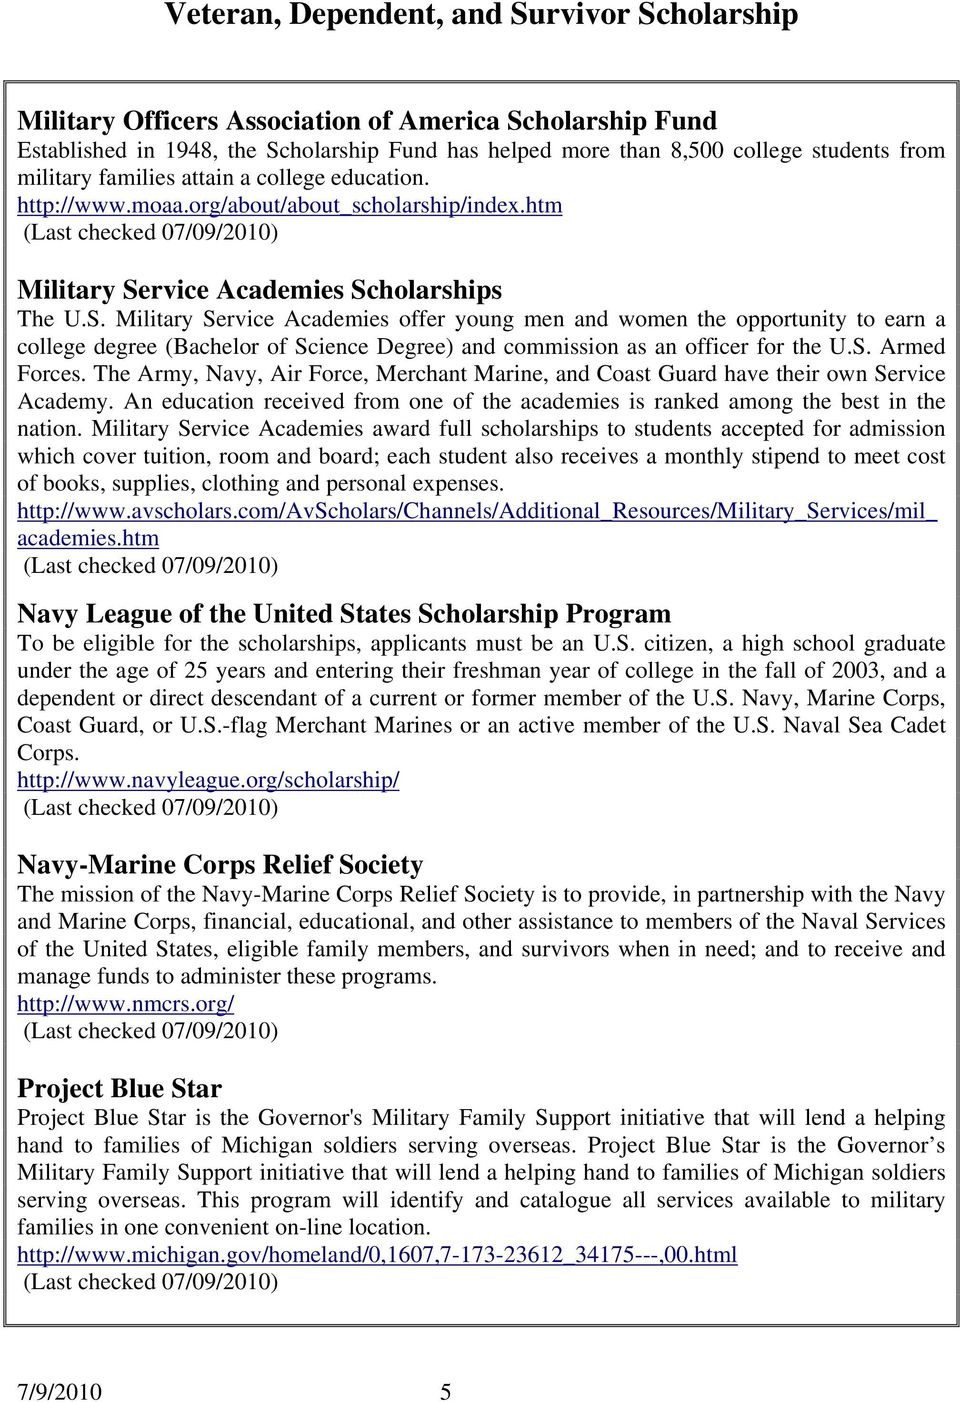 rvice Academies Scholarships The U.S. Military Service Academies offer young men and women the opportunity to earn a college degree (Bachelor of Science Degree) and commission as an officer for the U.